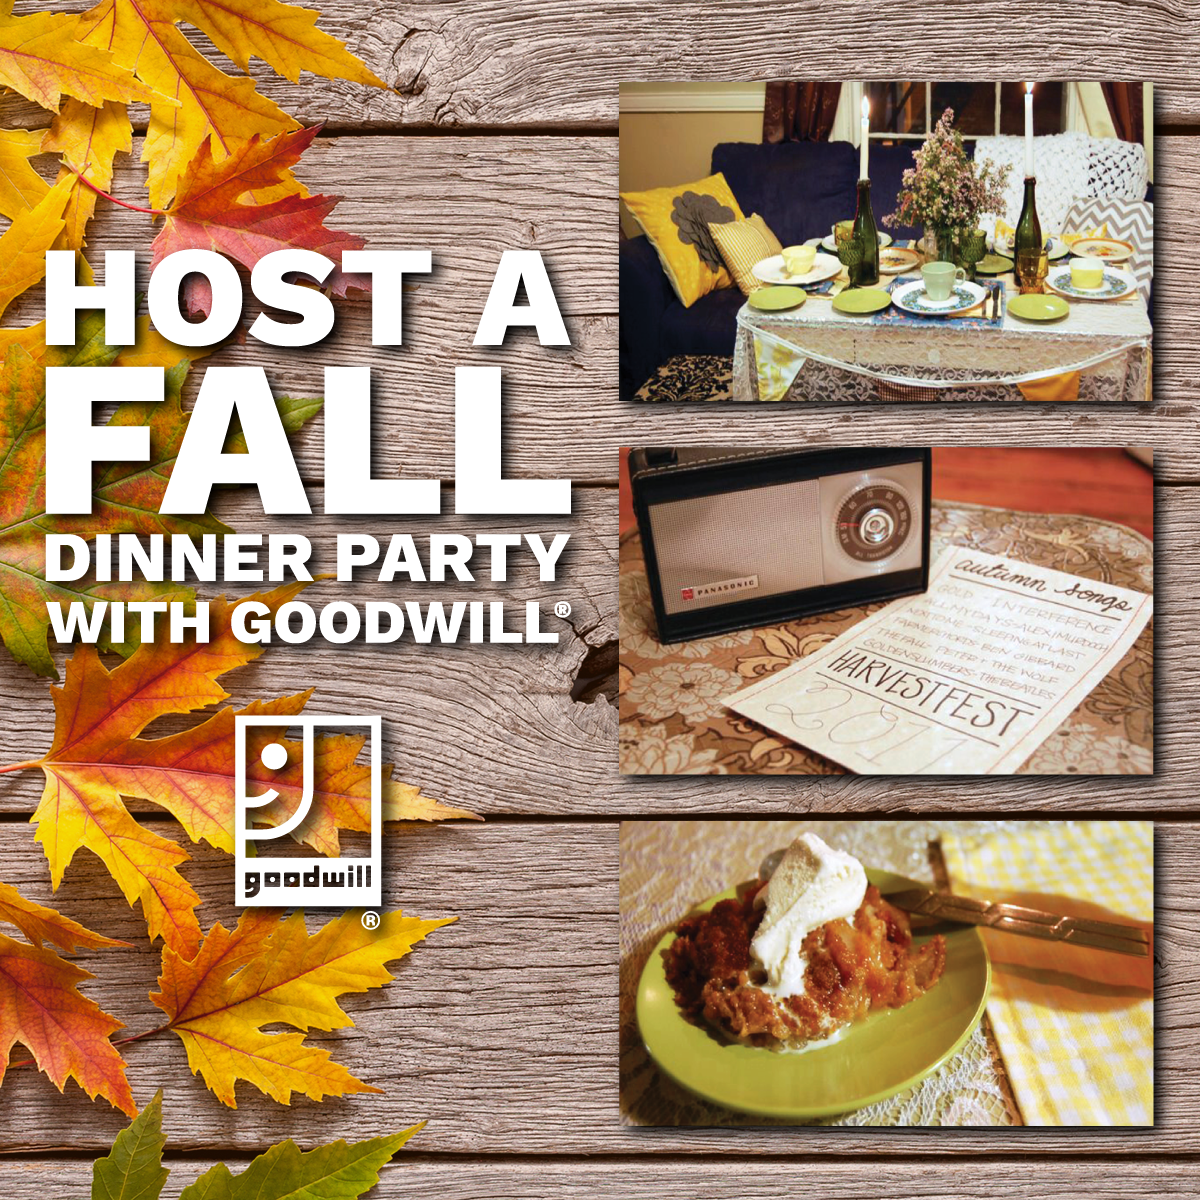 Host a Fall Dinner Party with Goodwill!